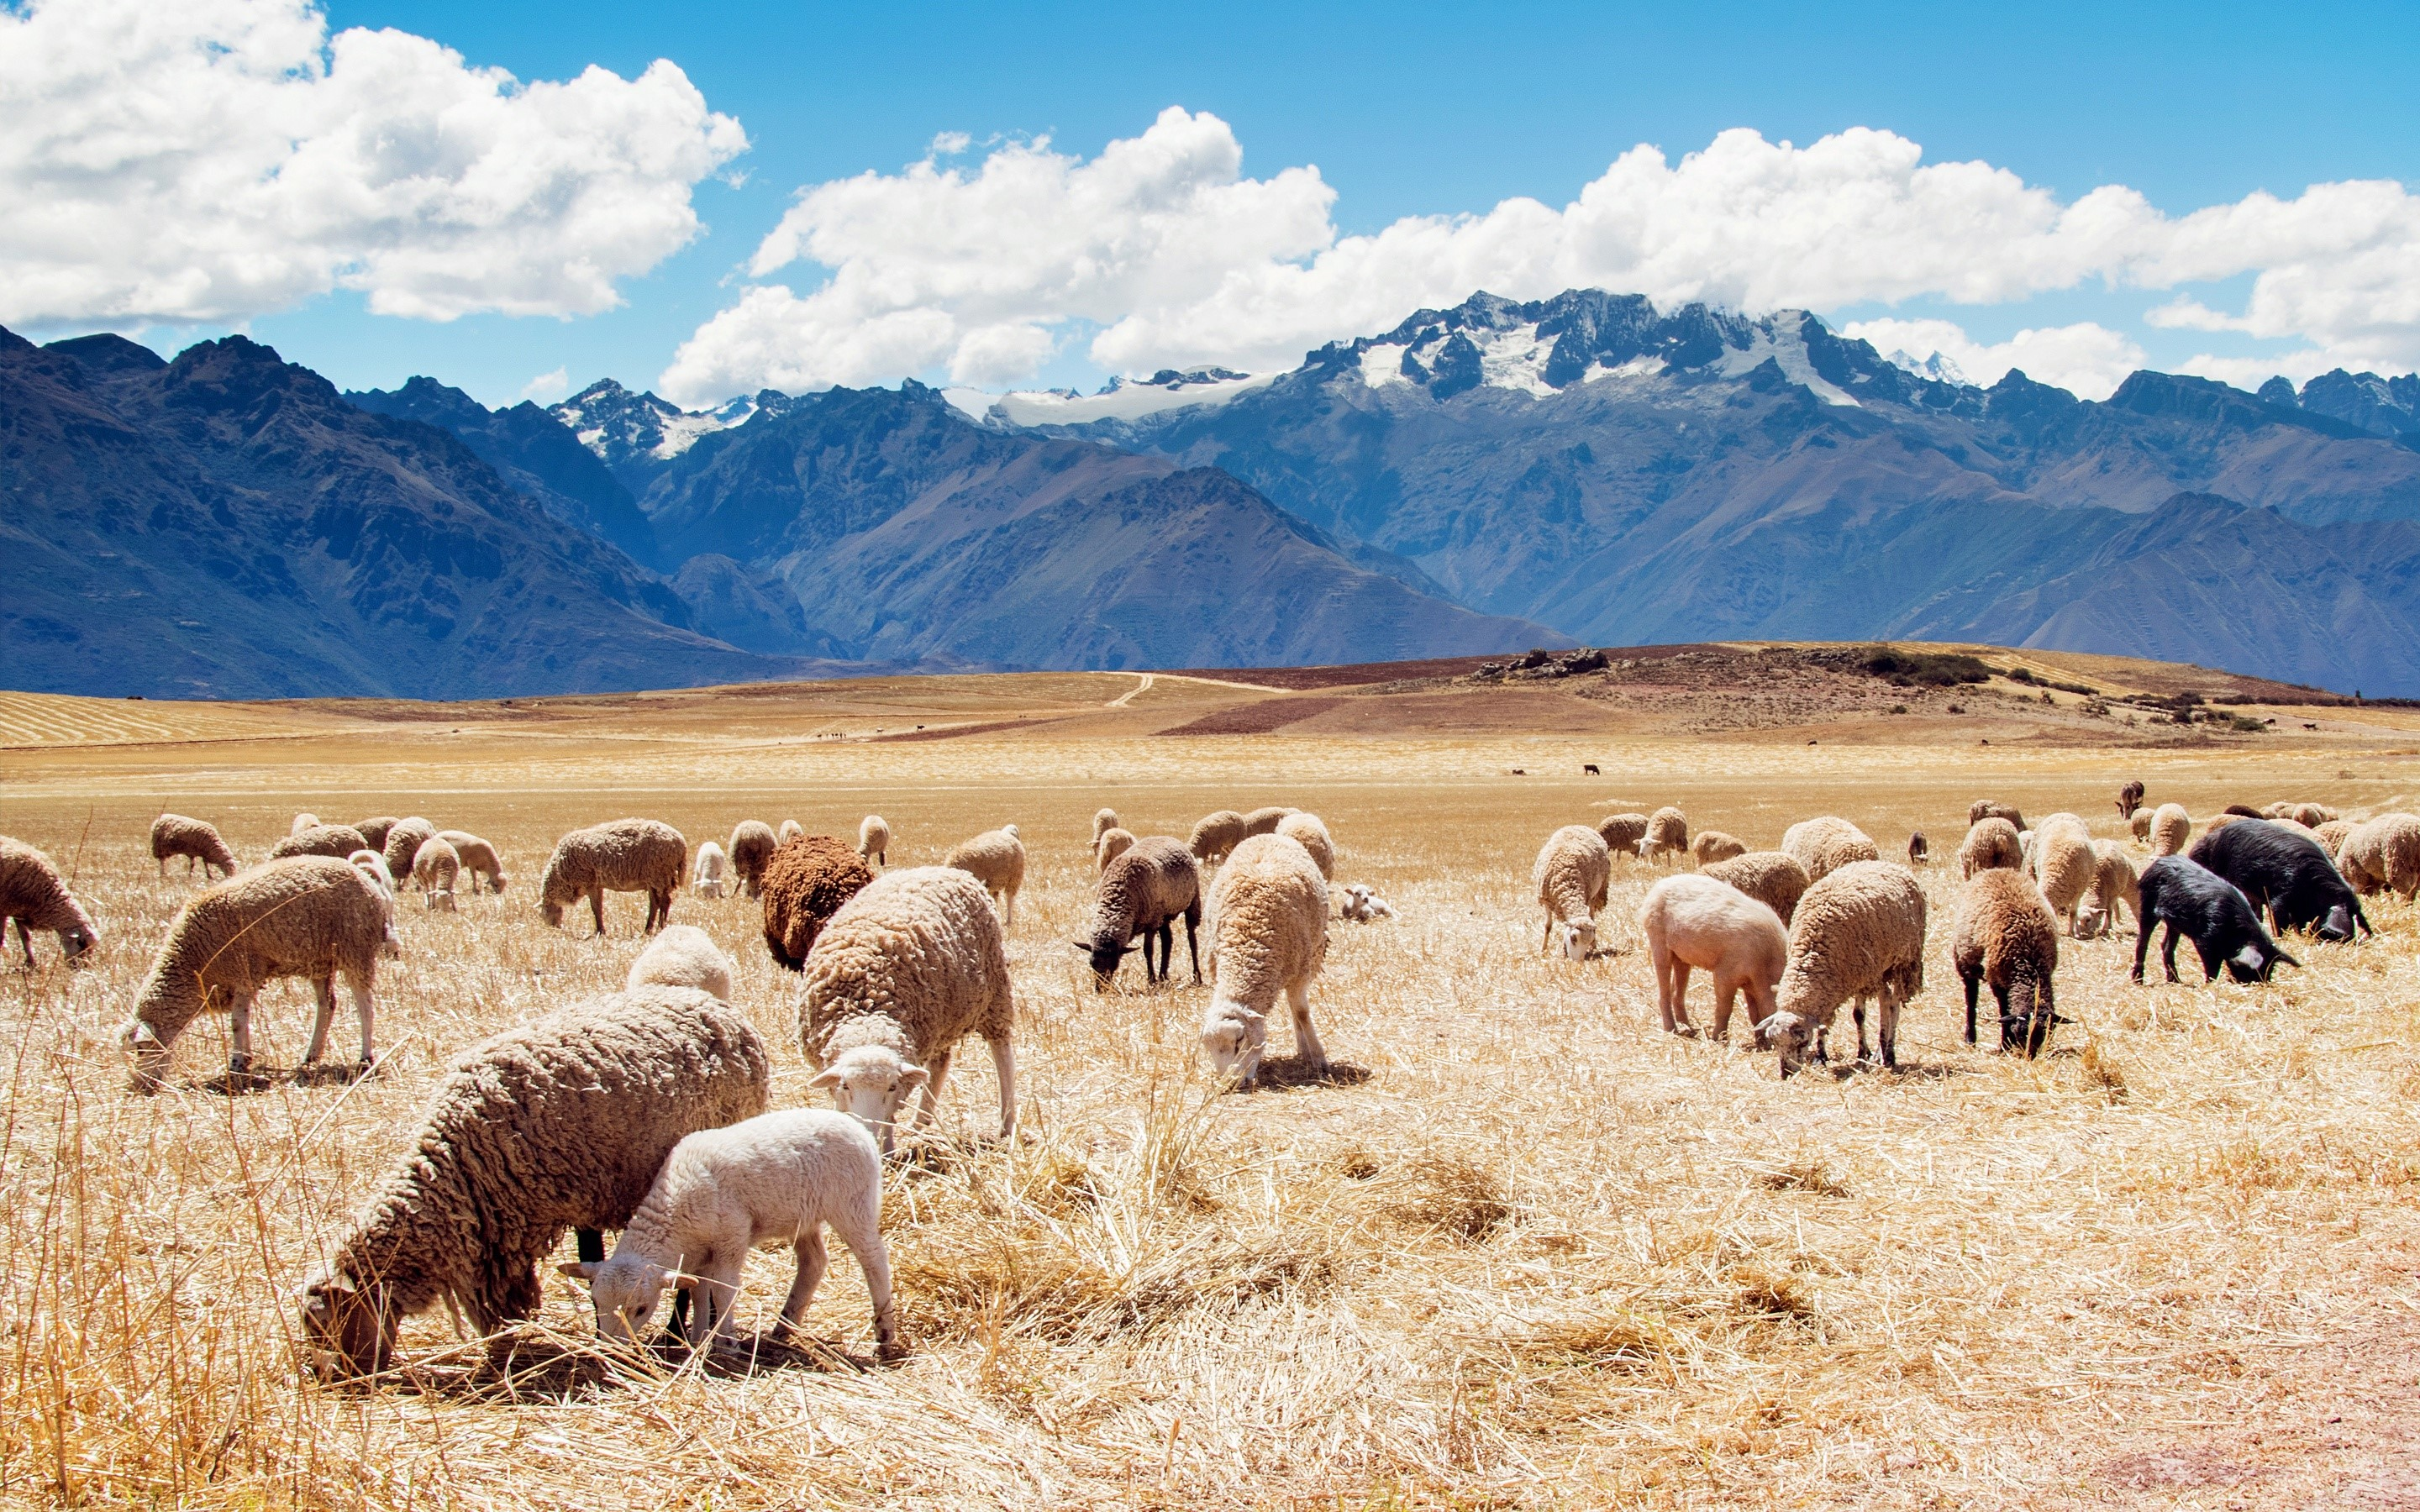 Wallpaper Field with sheep in Peru